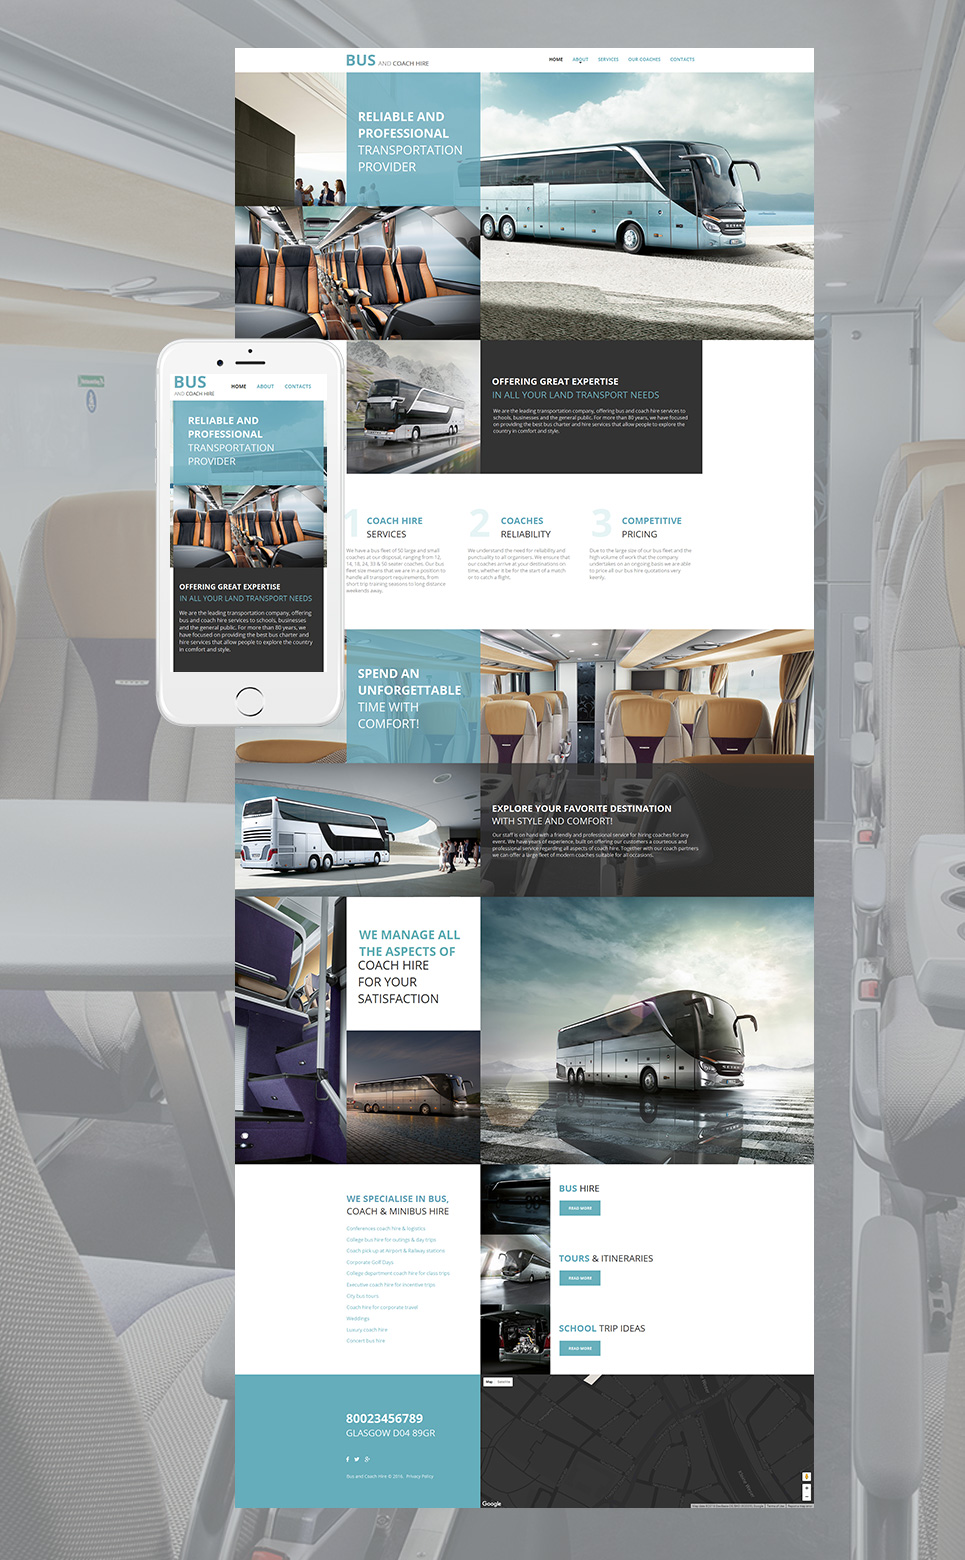 Bus and Coach Hire html HTML Website Template - image